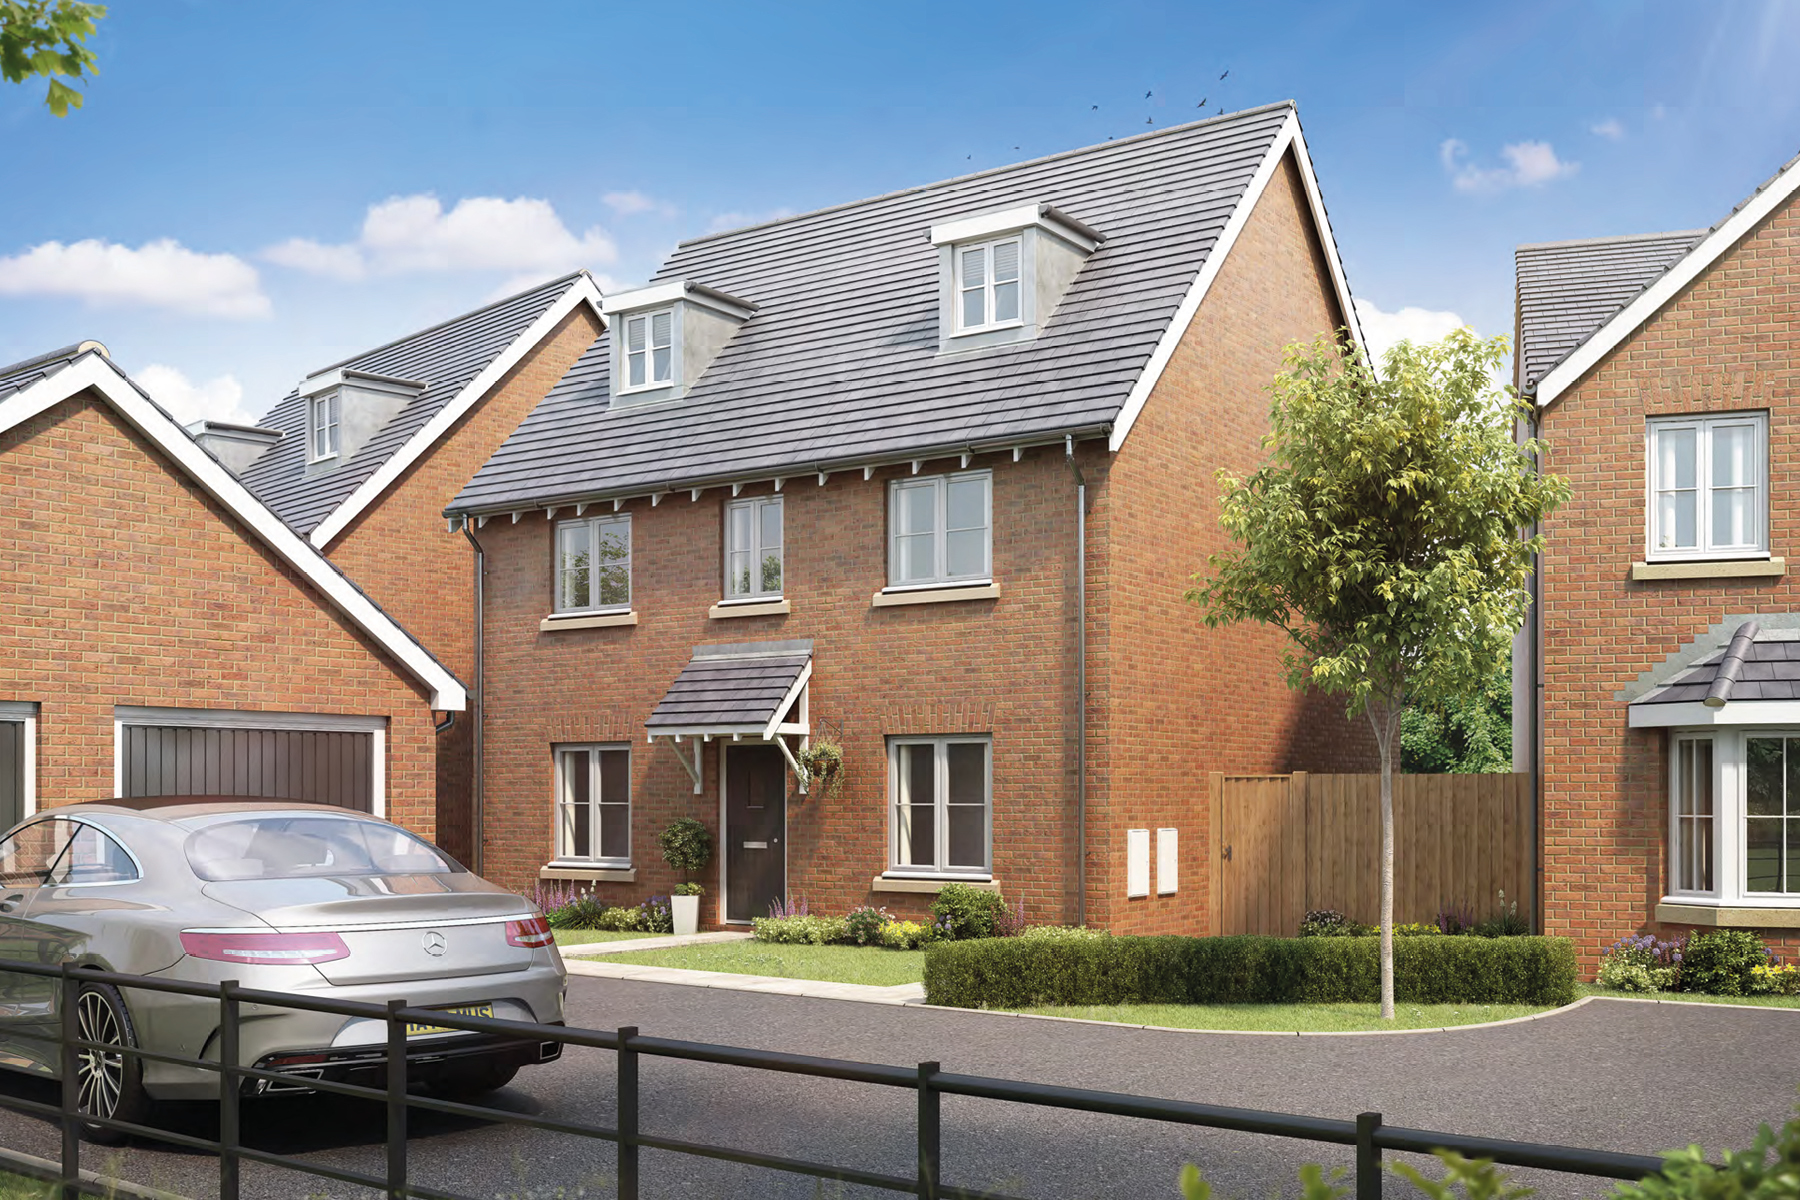 New homes in Market Harborough - Taylor Wimpey